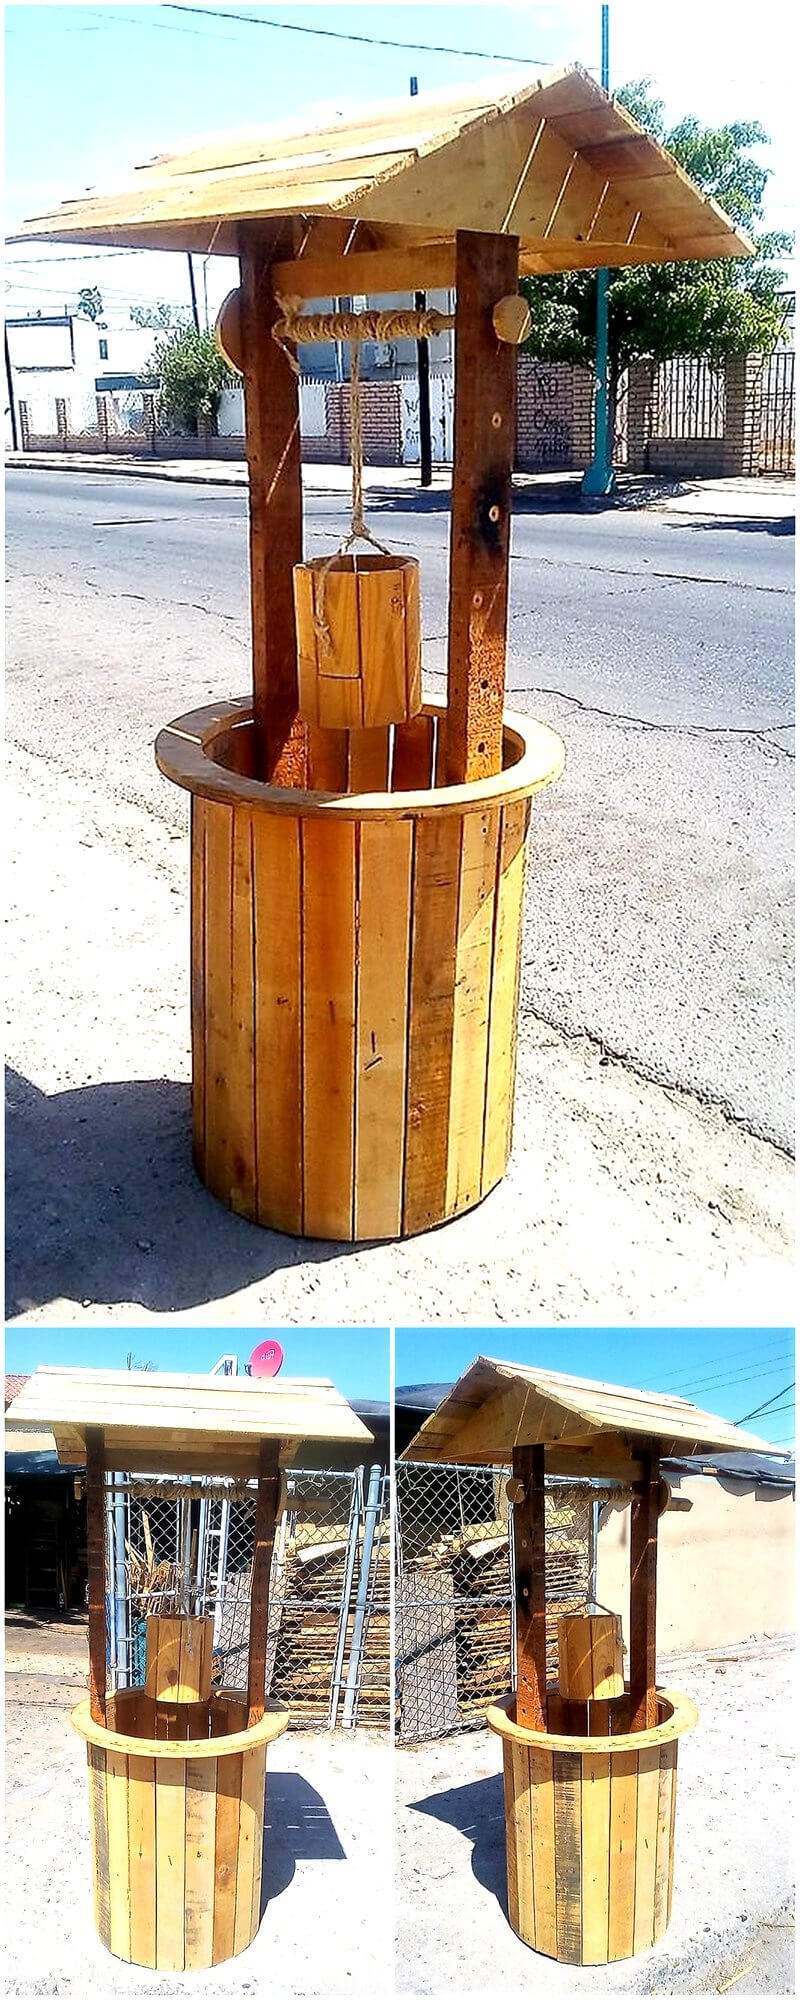 pallet wooden well art crafting